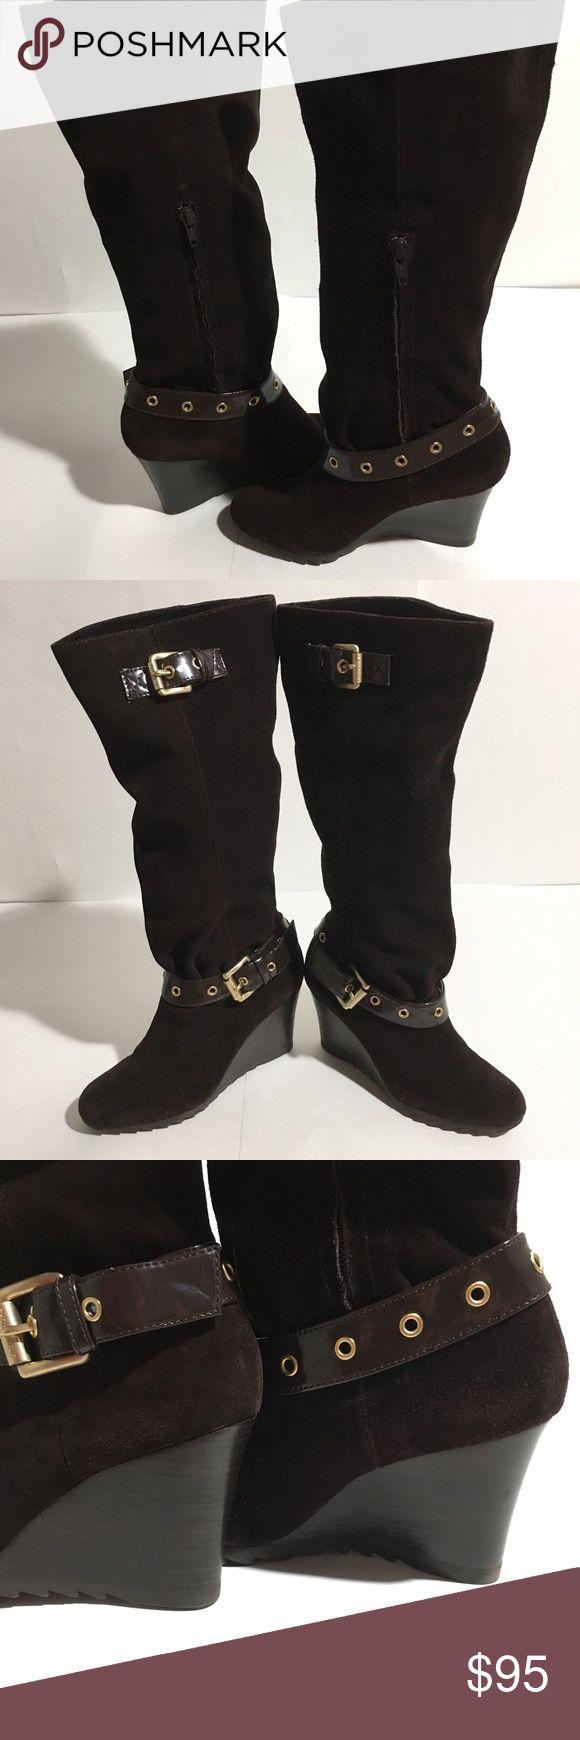 Michael Kors Brown Norma Suede Knee High Boots 5.5 5.5M, 3.5 inch wedge, brown suede with buckle, excellent condition Michael Kors Shoes Heeled Boots